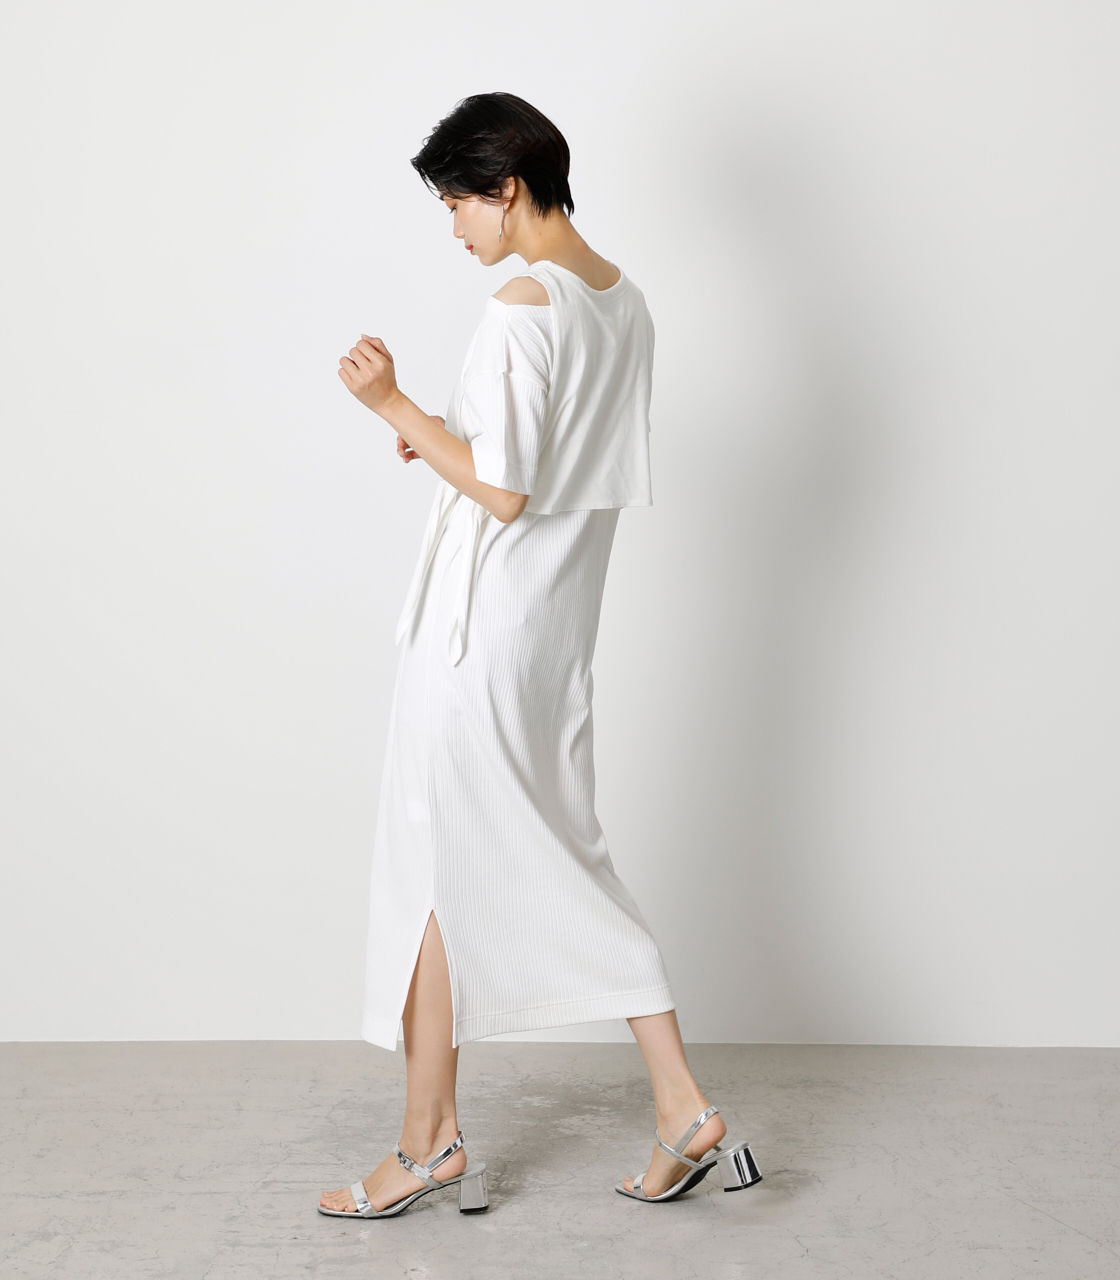 FRONT LINK ONEPIECE/フロントリンクワンピース 詳細画像 O/WHT 3